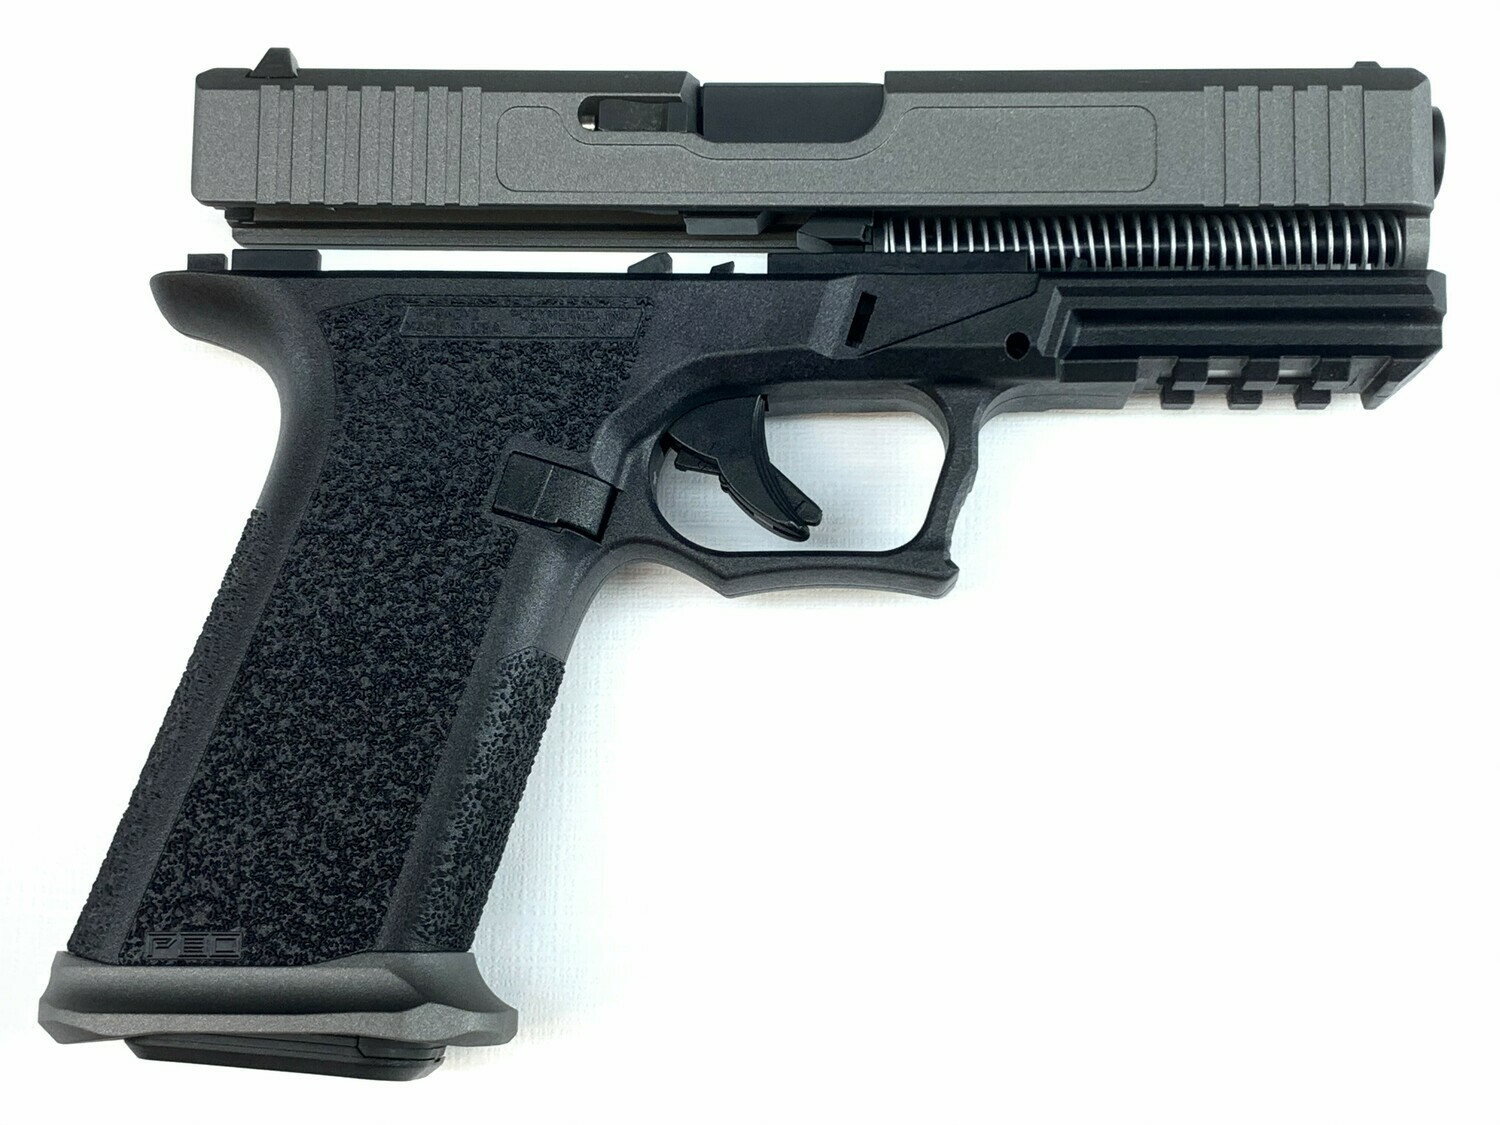 Patriot G17 80% Pistol Build Kit 9mm - Polymer80 PF940V2 - Tungsten Silver / Black - Steel City Magwell - 10rd Mag Or 17rd Mag